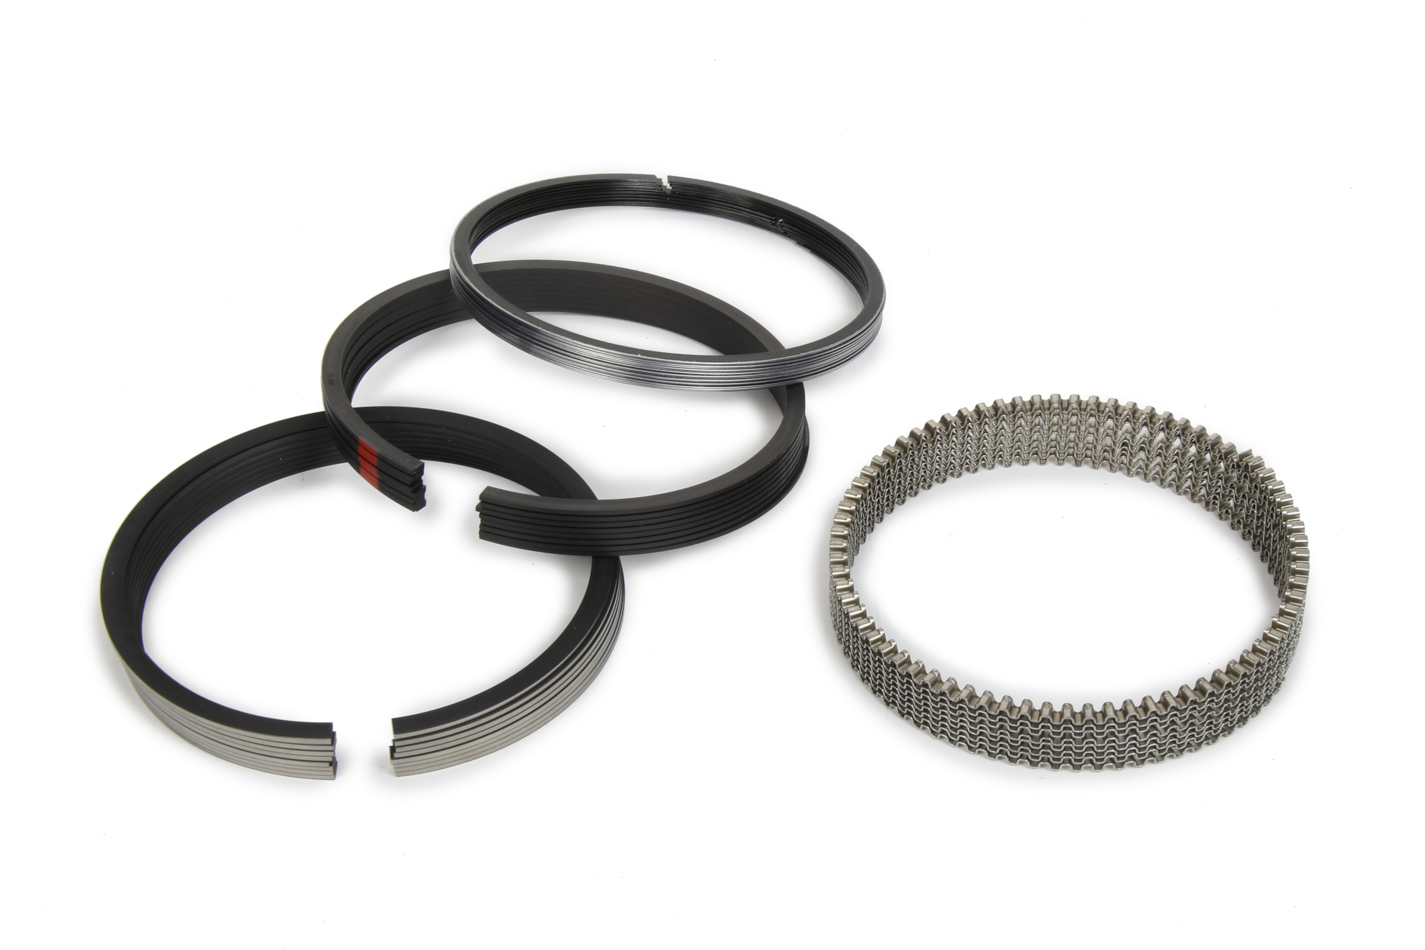 Michigan 77 315-0033.030 Piston Rings, 4.030 in Bore, 1/16 x 1/16 x 1/8 in Thick, Standard Tension, Plasma Moly, 8 Cylinder, Kit